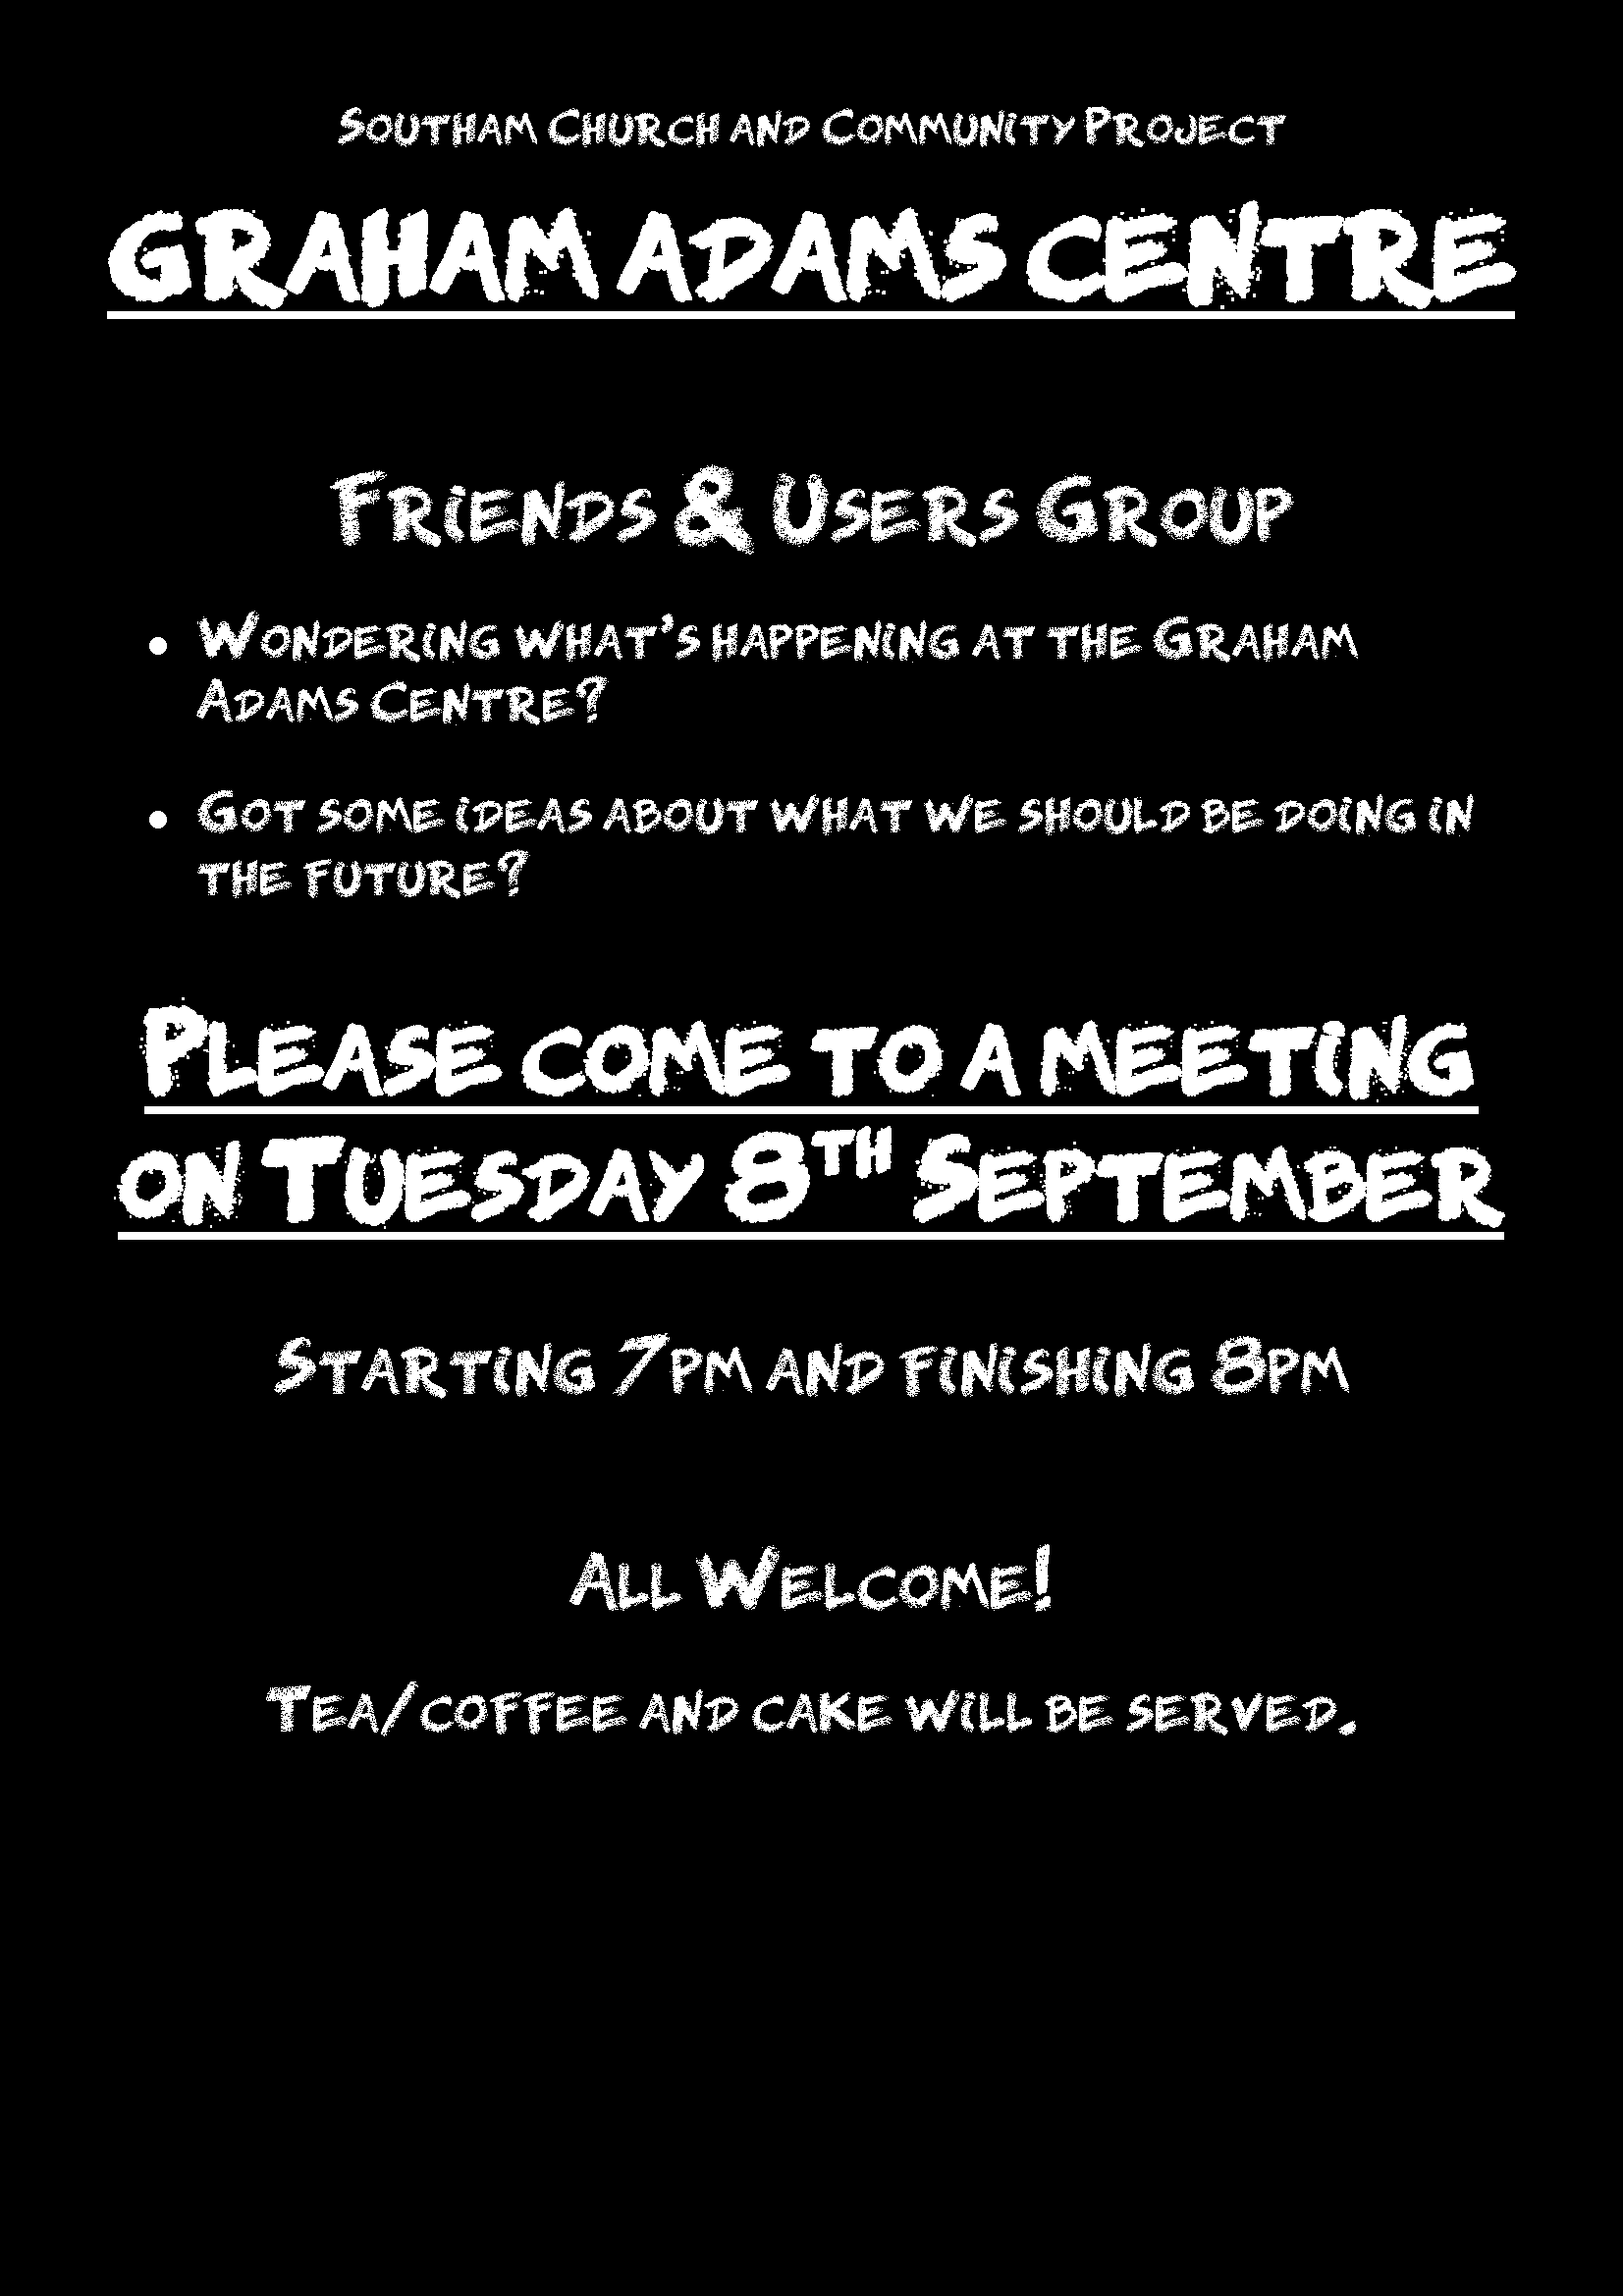 Friends and Users Group Meeting Details